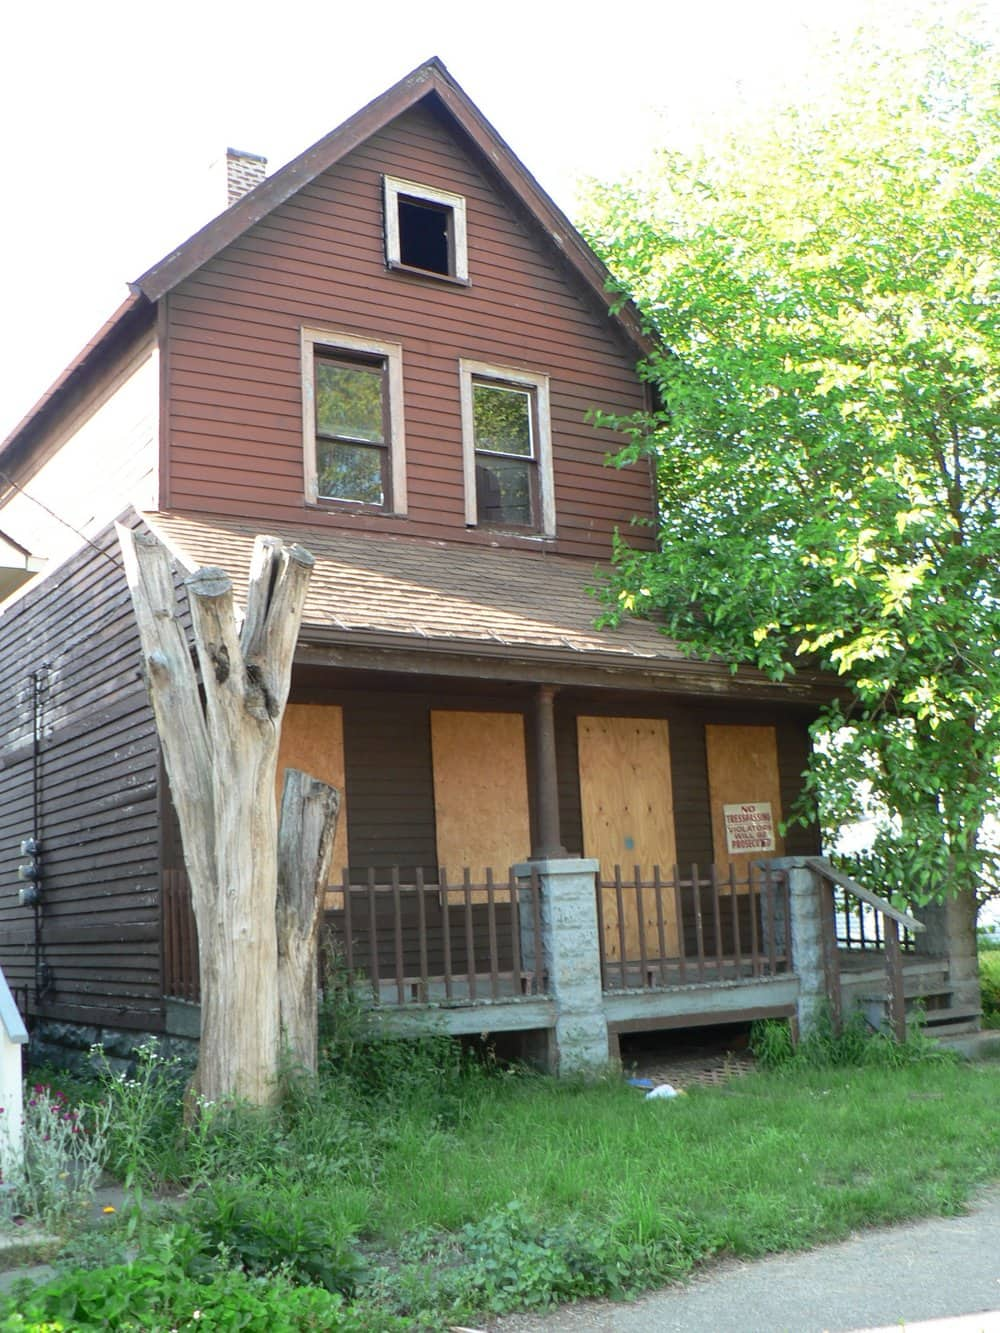 An abandoned home in Cleveland (Source: Wikimedia Commons)